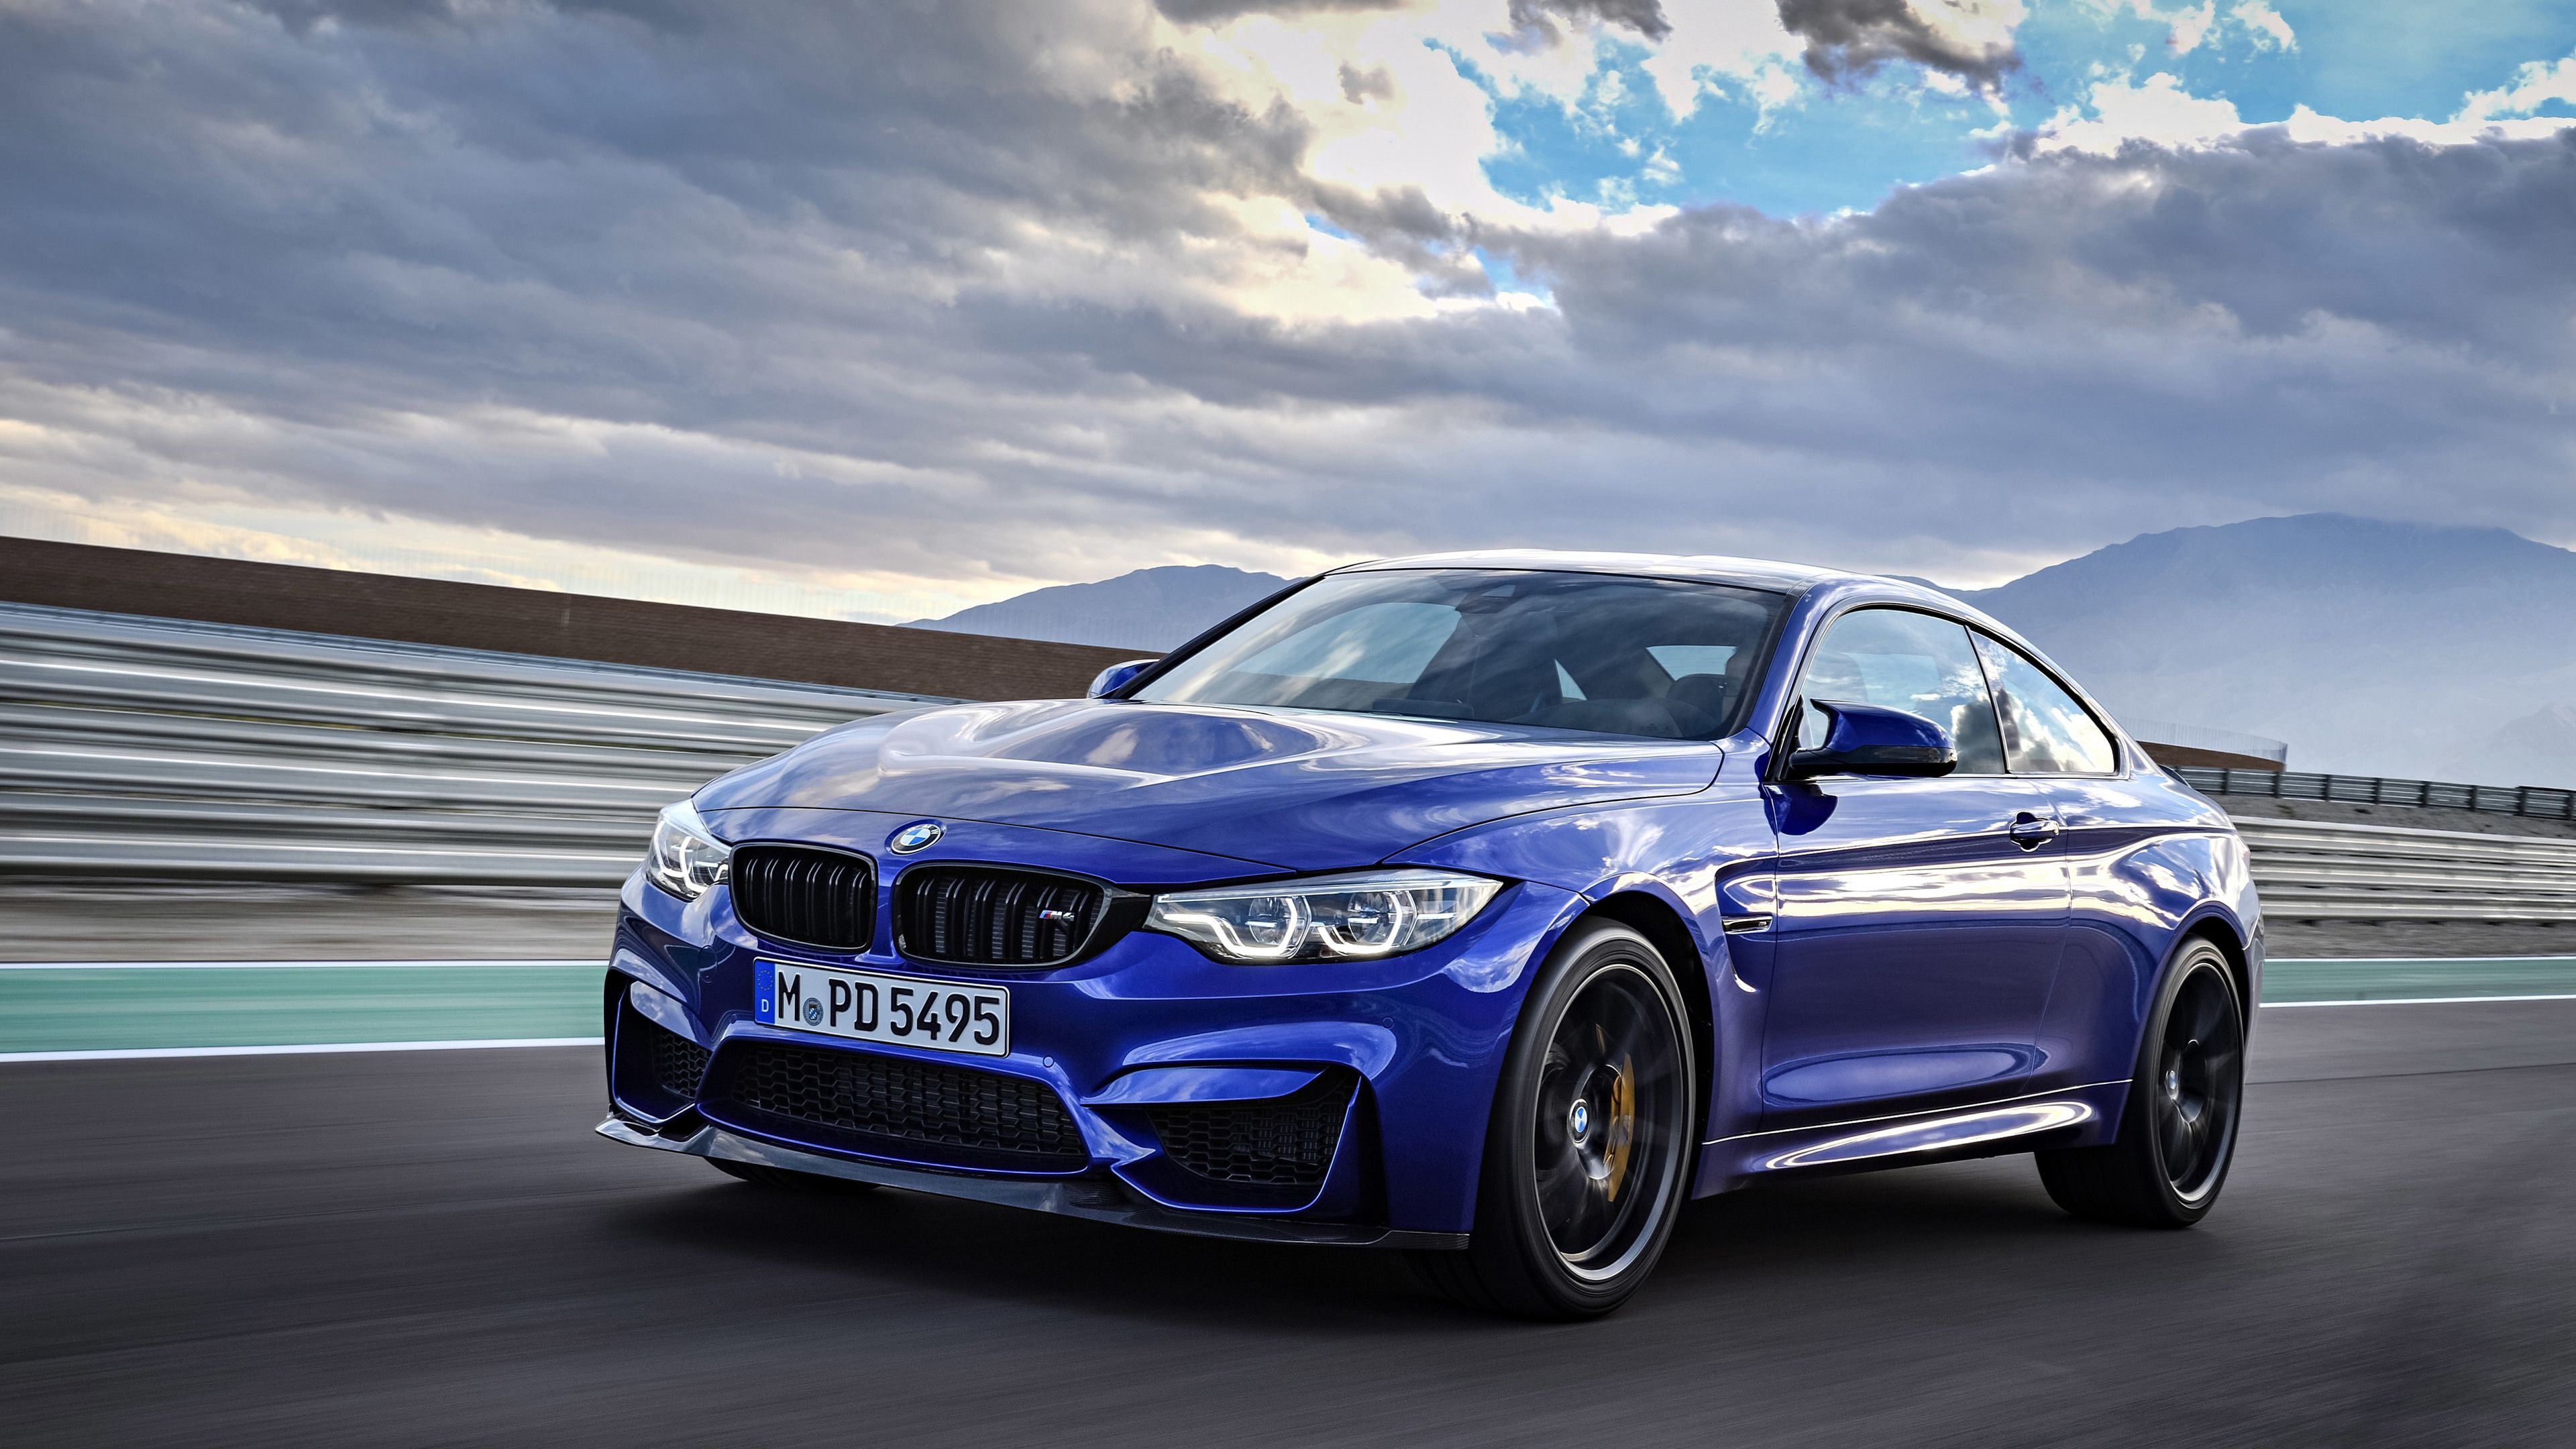 Wallpaper 4k Bmw M4 Cs 2018 2018 Cars Wallpapers 4k Wallpapers